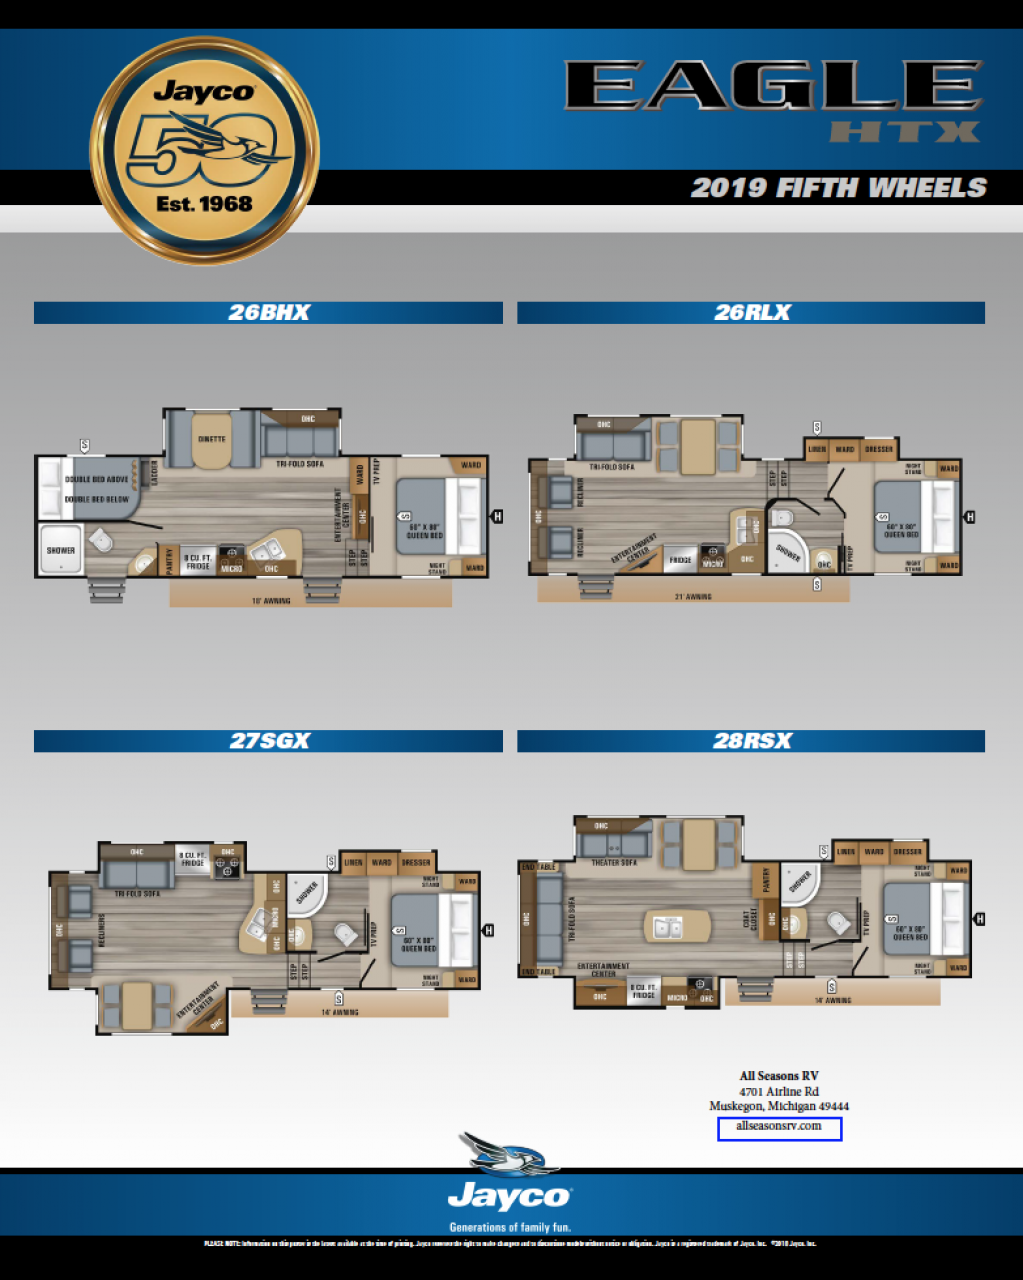 2019 Jayco Eagle HTX RV Brochure Cover